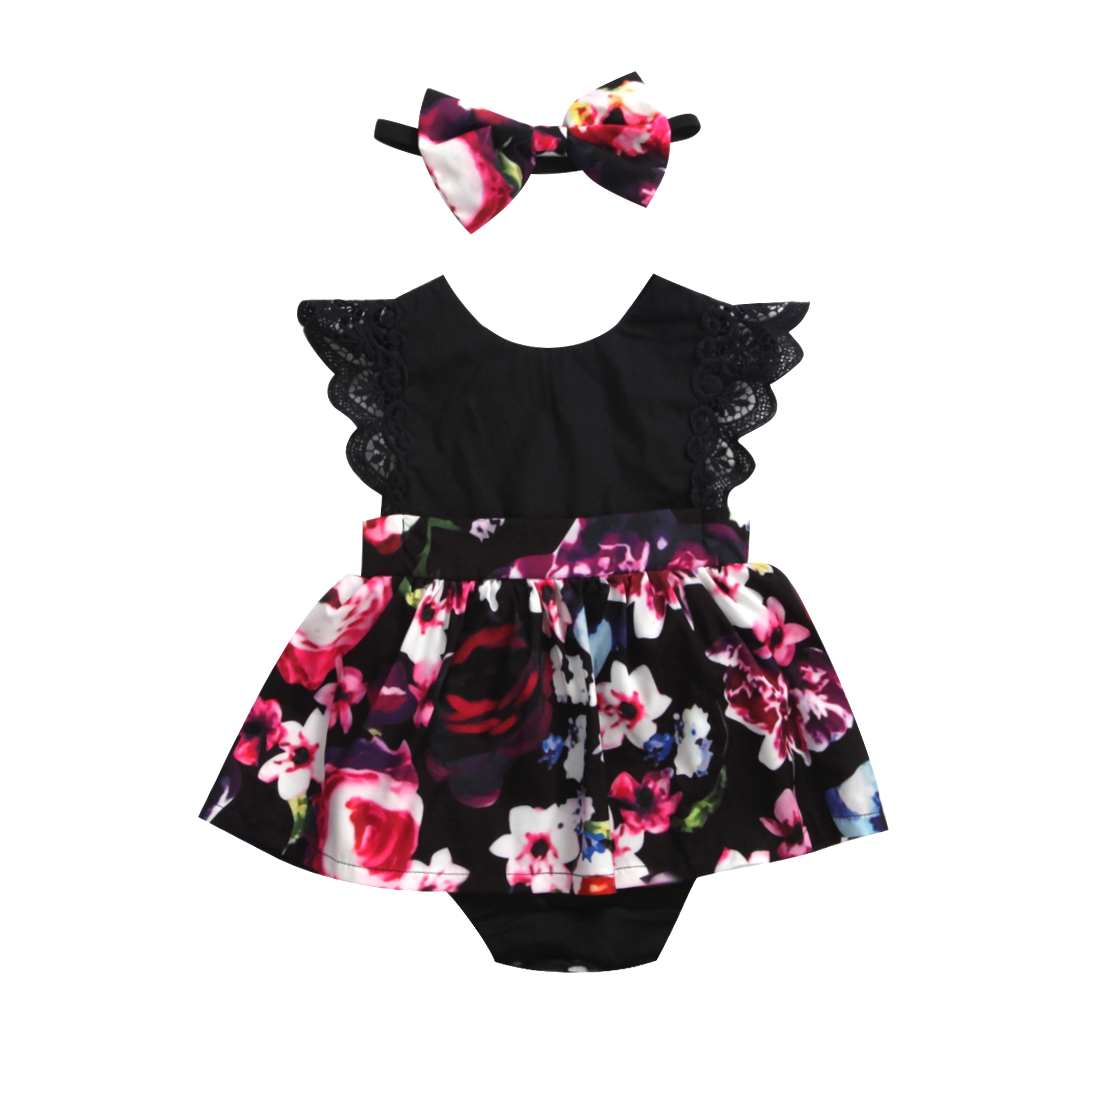 ec0a01e23592 BNWIGE 0-24M Casual Summer Baby Girl Dress Cotton Print Floral Bow Infant  Girl Dresses Toddler Baby Girl Clothes. US  4.49. 2018 FOCUSNORM Newborn ...